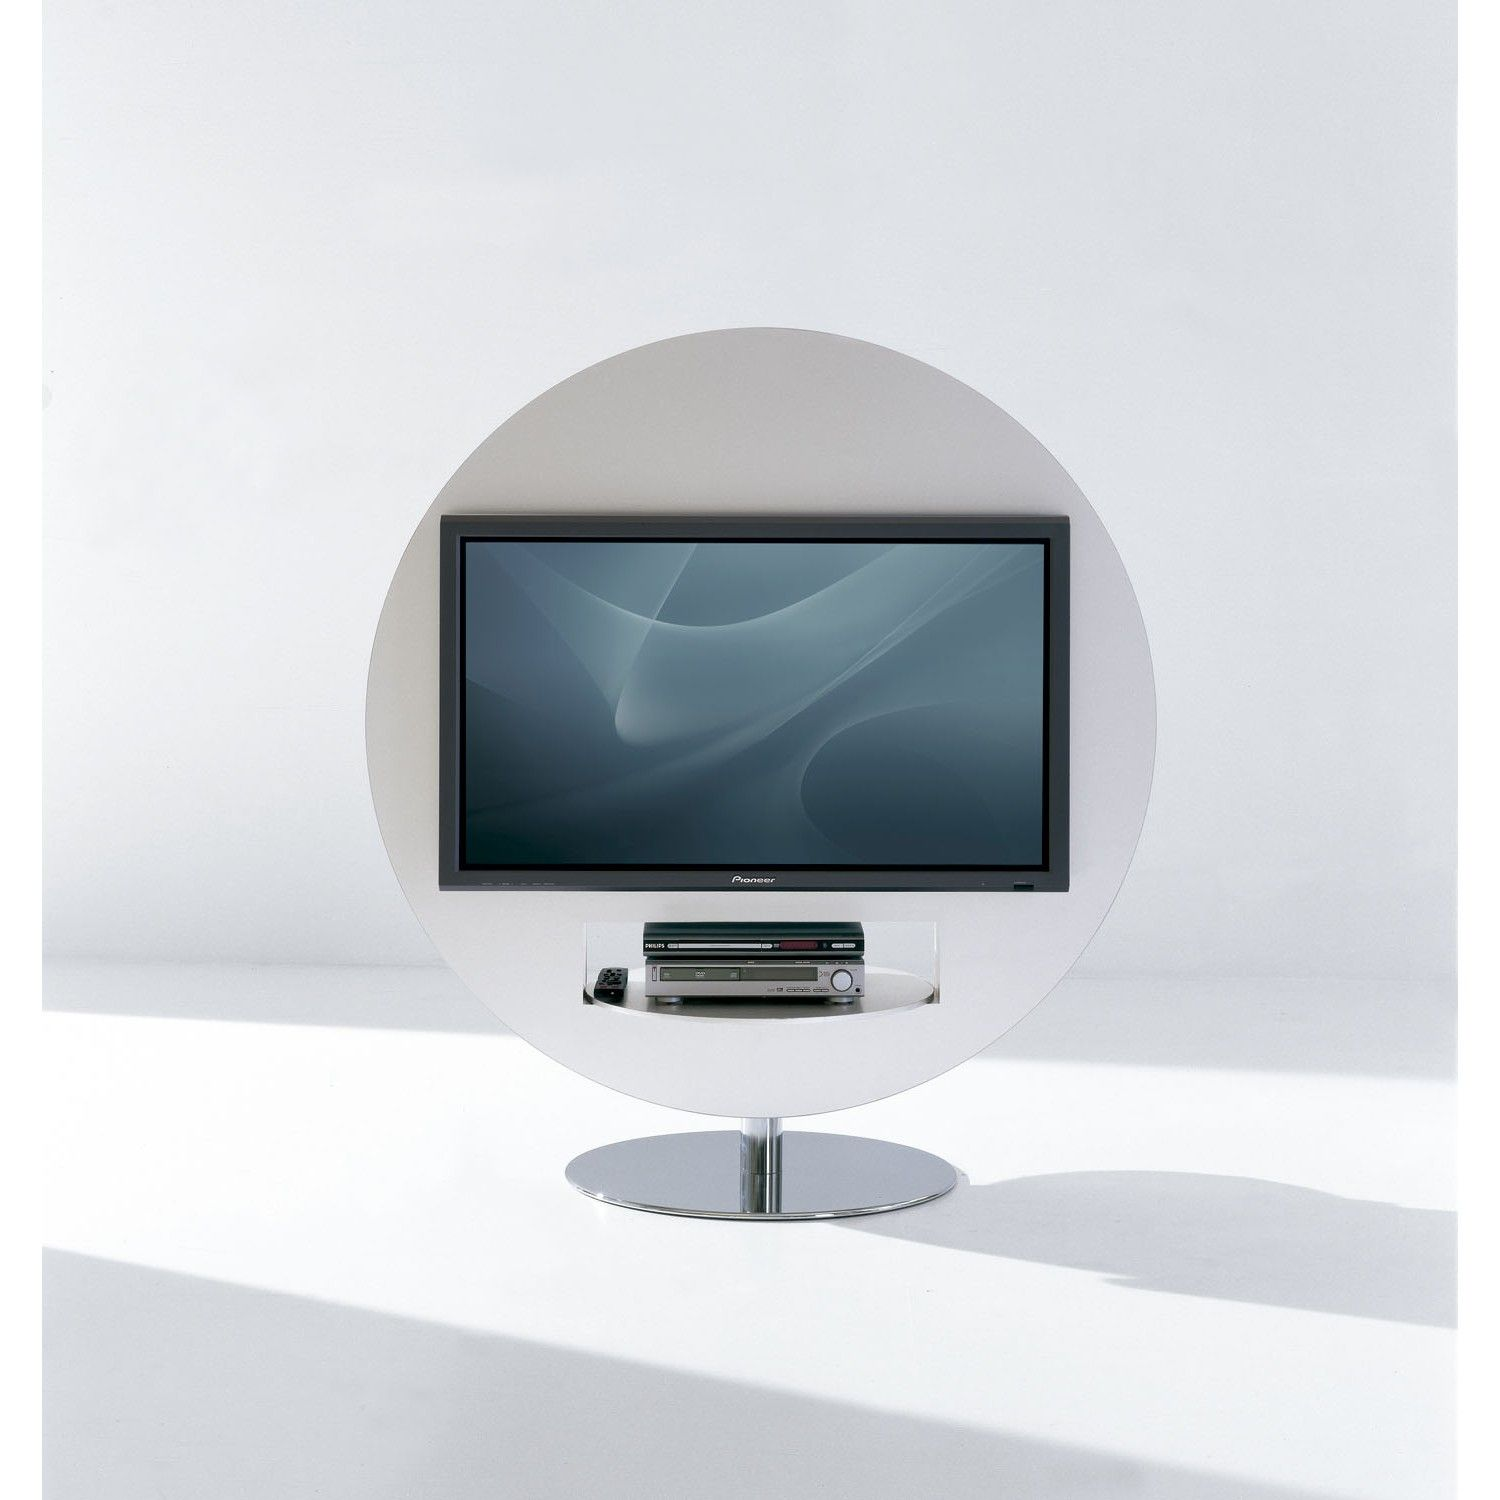 Mueble Giratorio Para Tv Mueble De Tv Visión Decor Pinterest